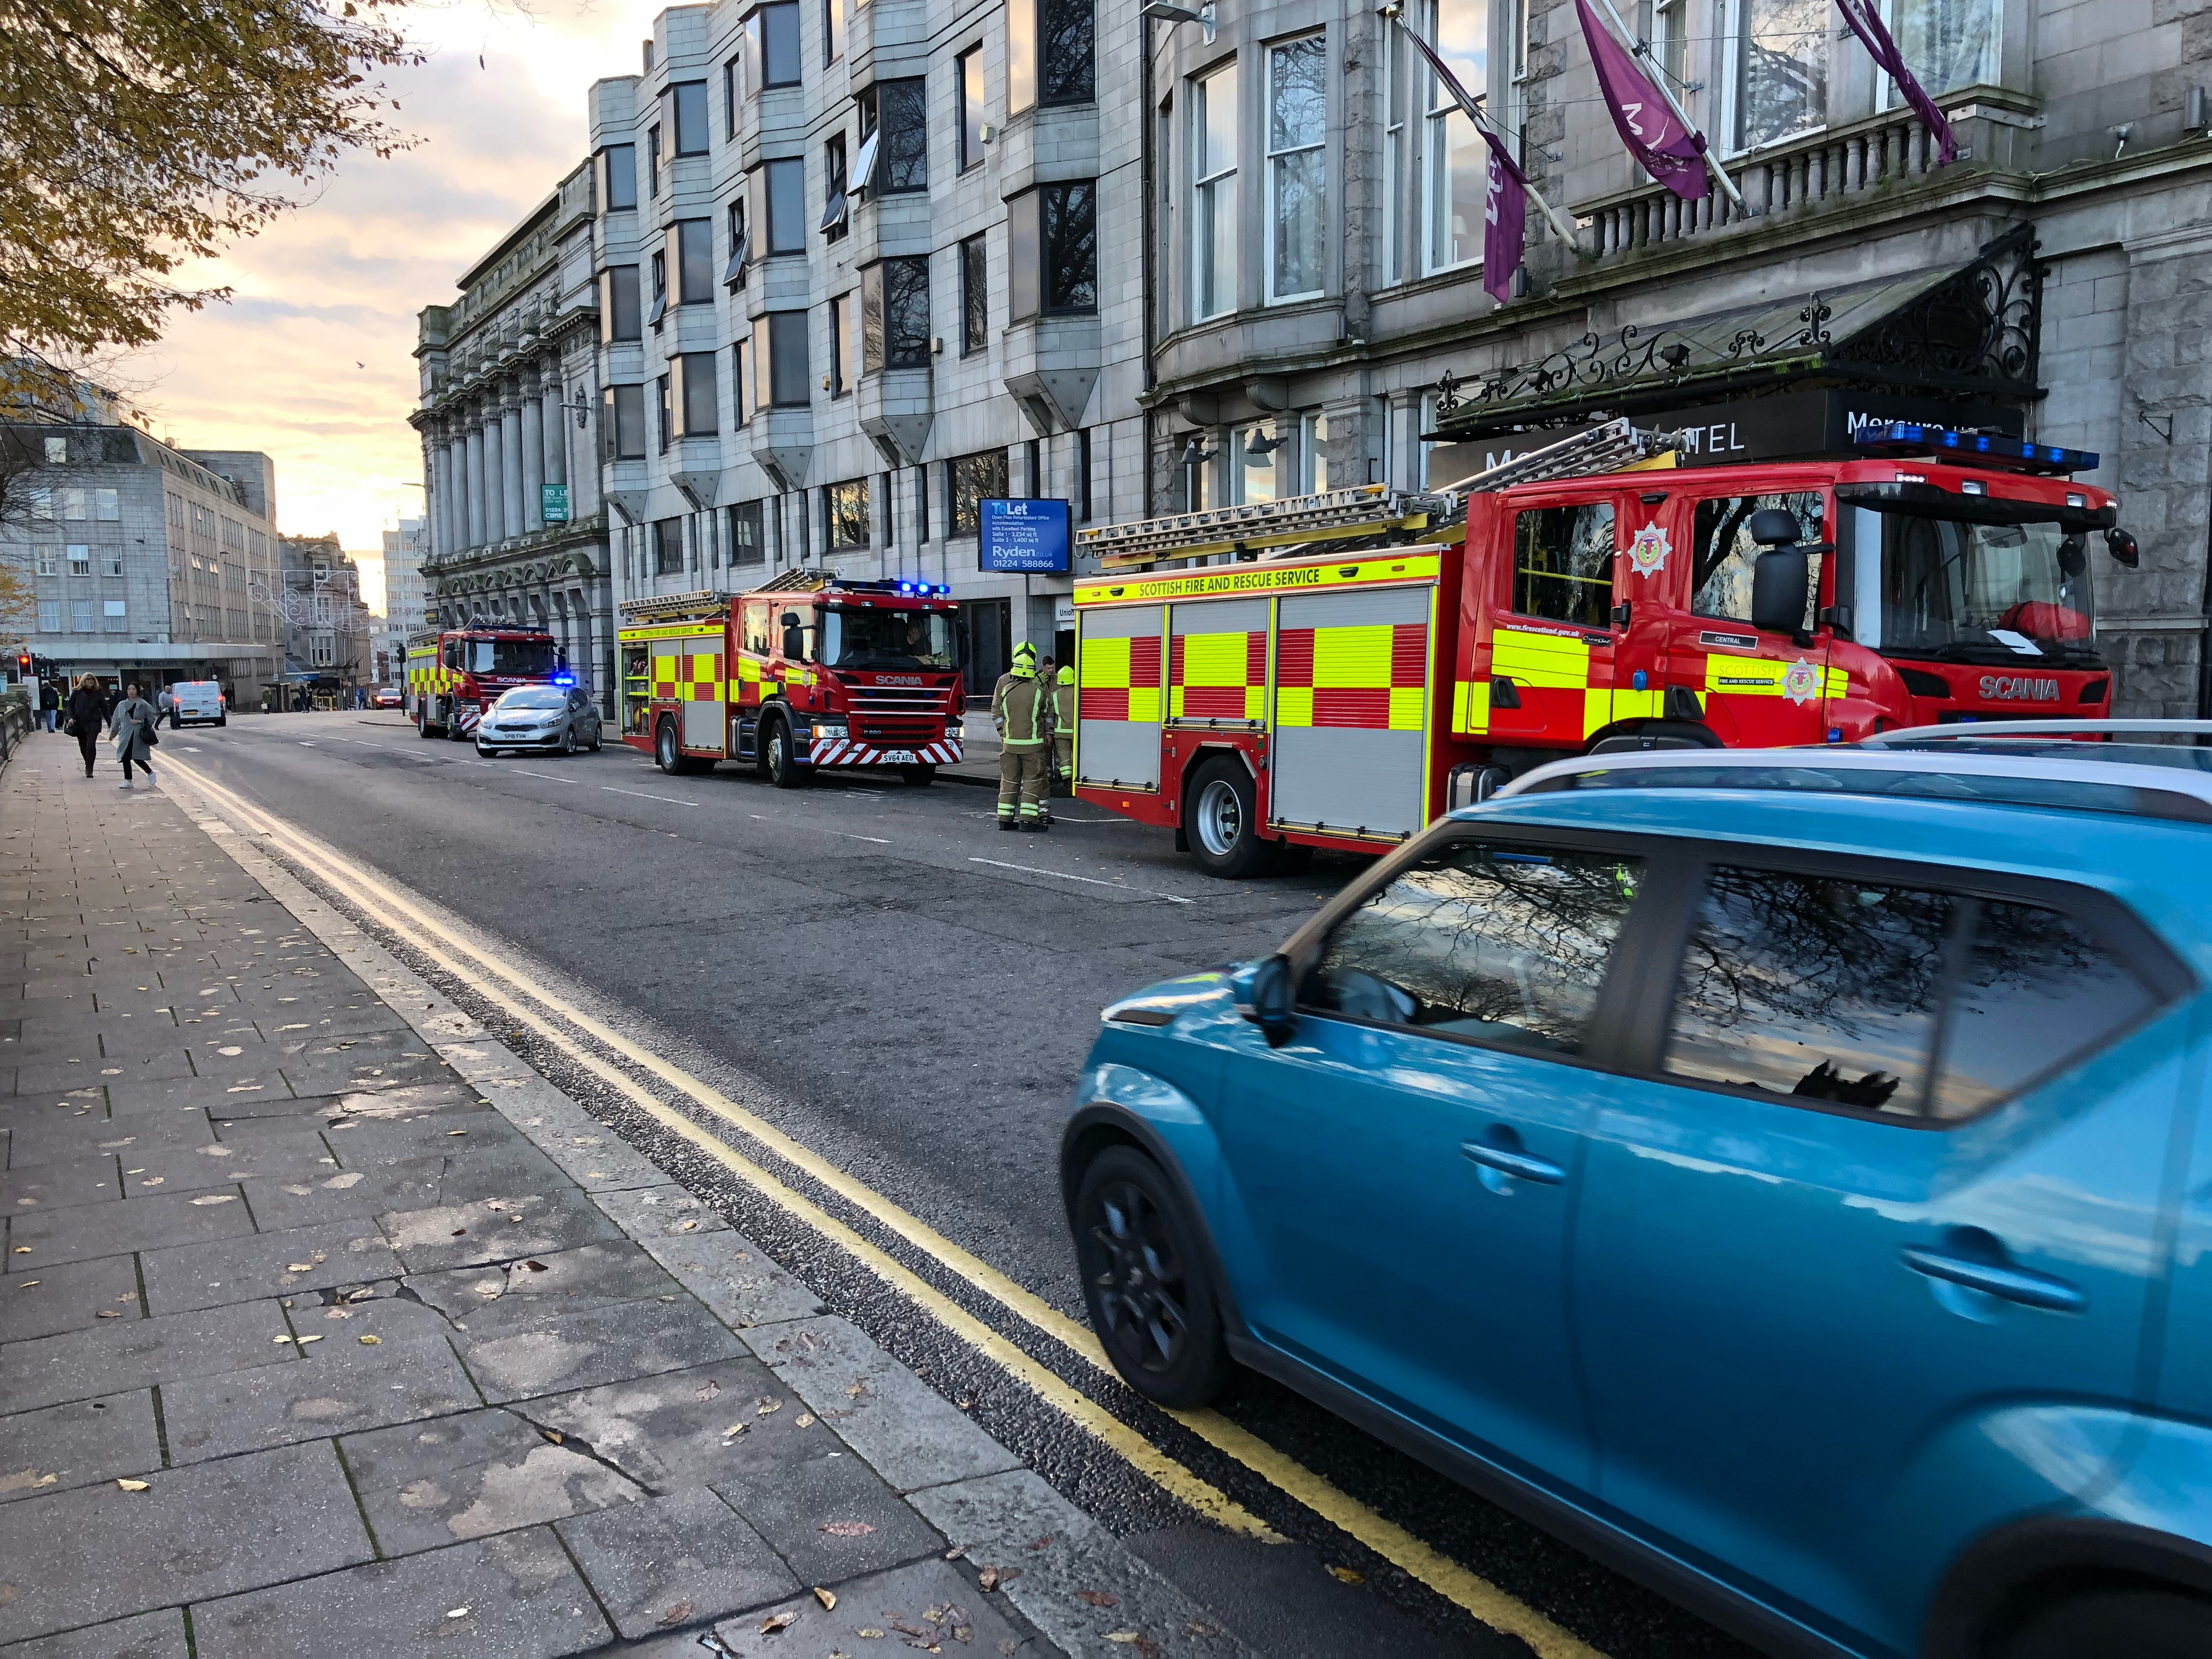 Crews were called to the Mercure hotel on Union Terrace at 9.08am